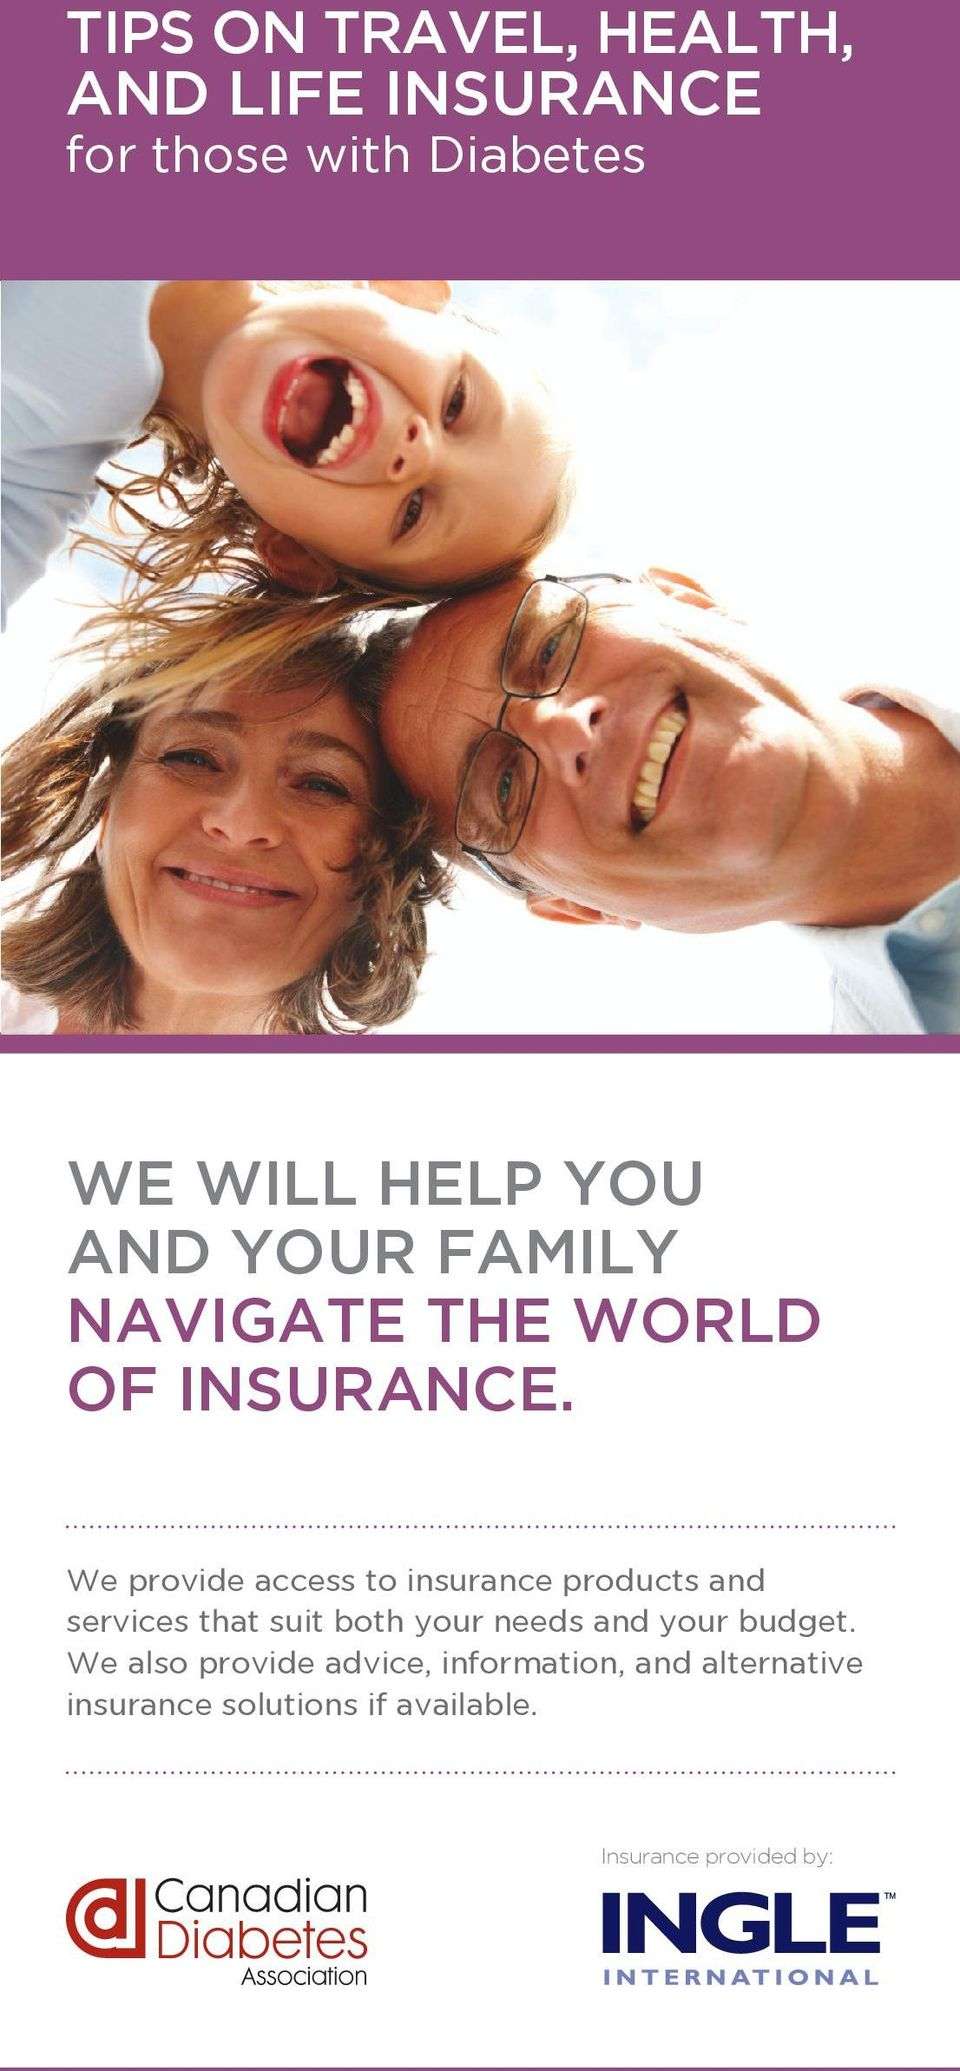 We provide access to insurance products and services that suit both your needs and